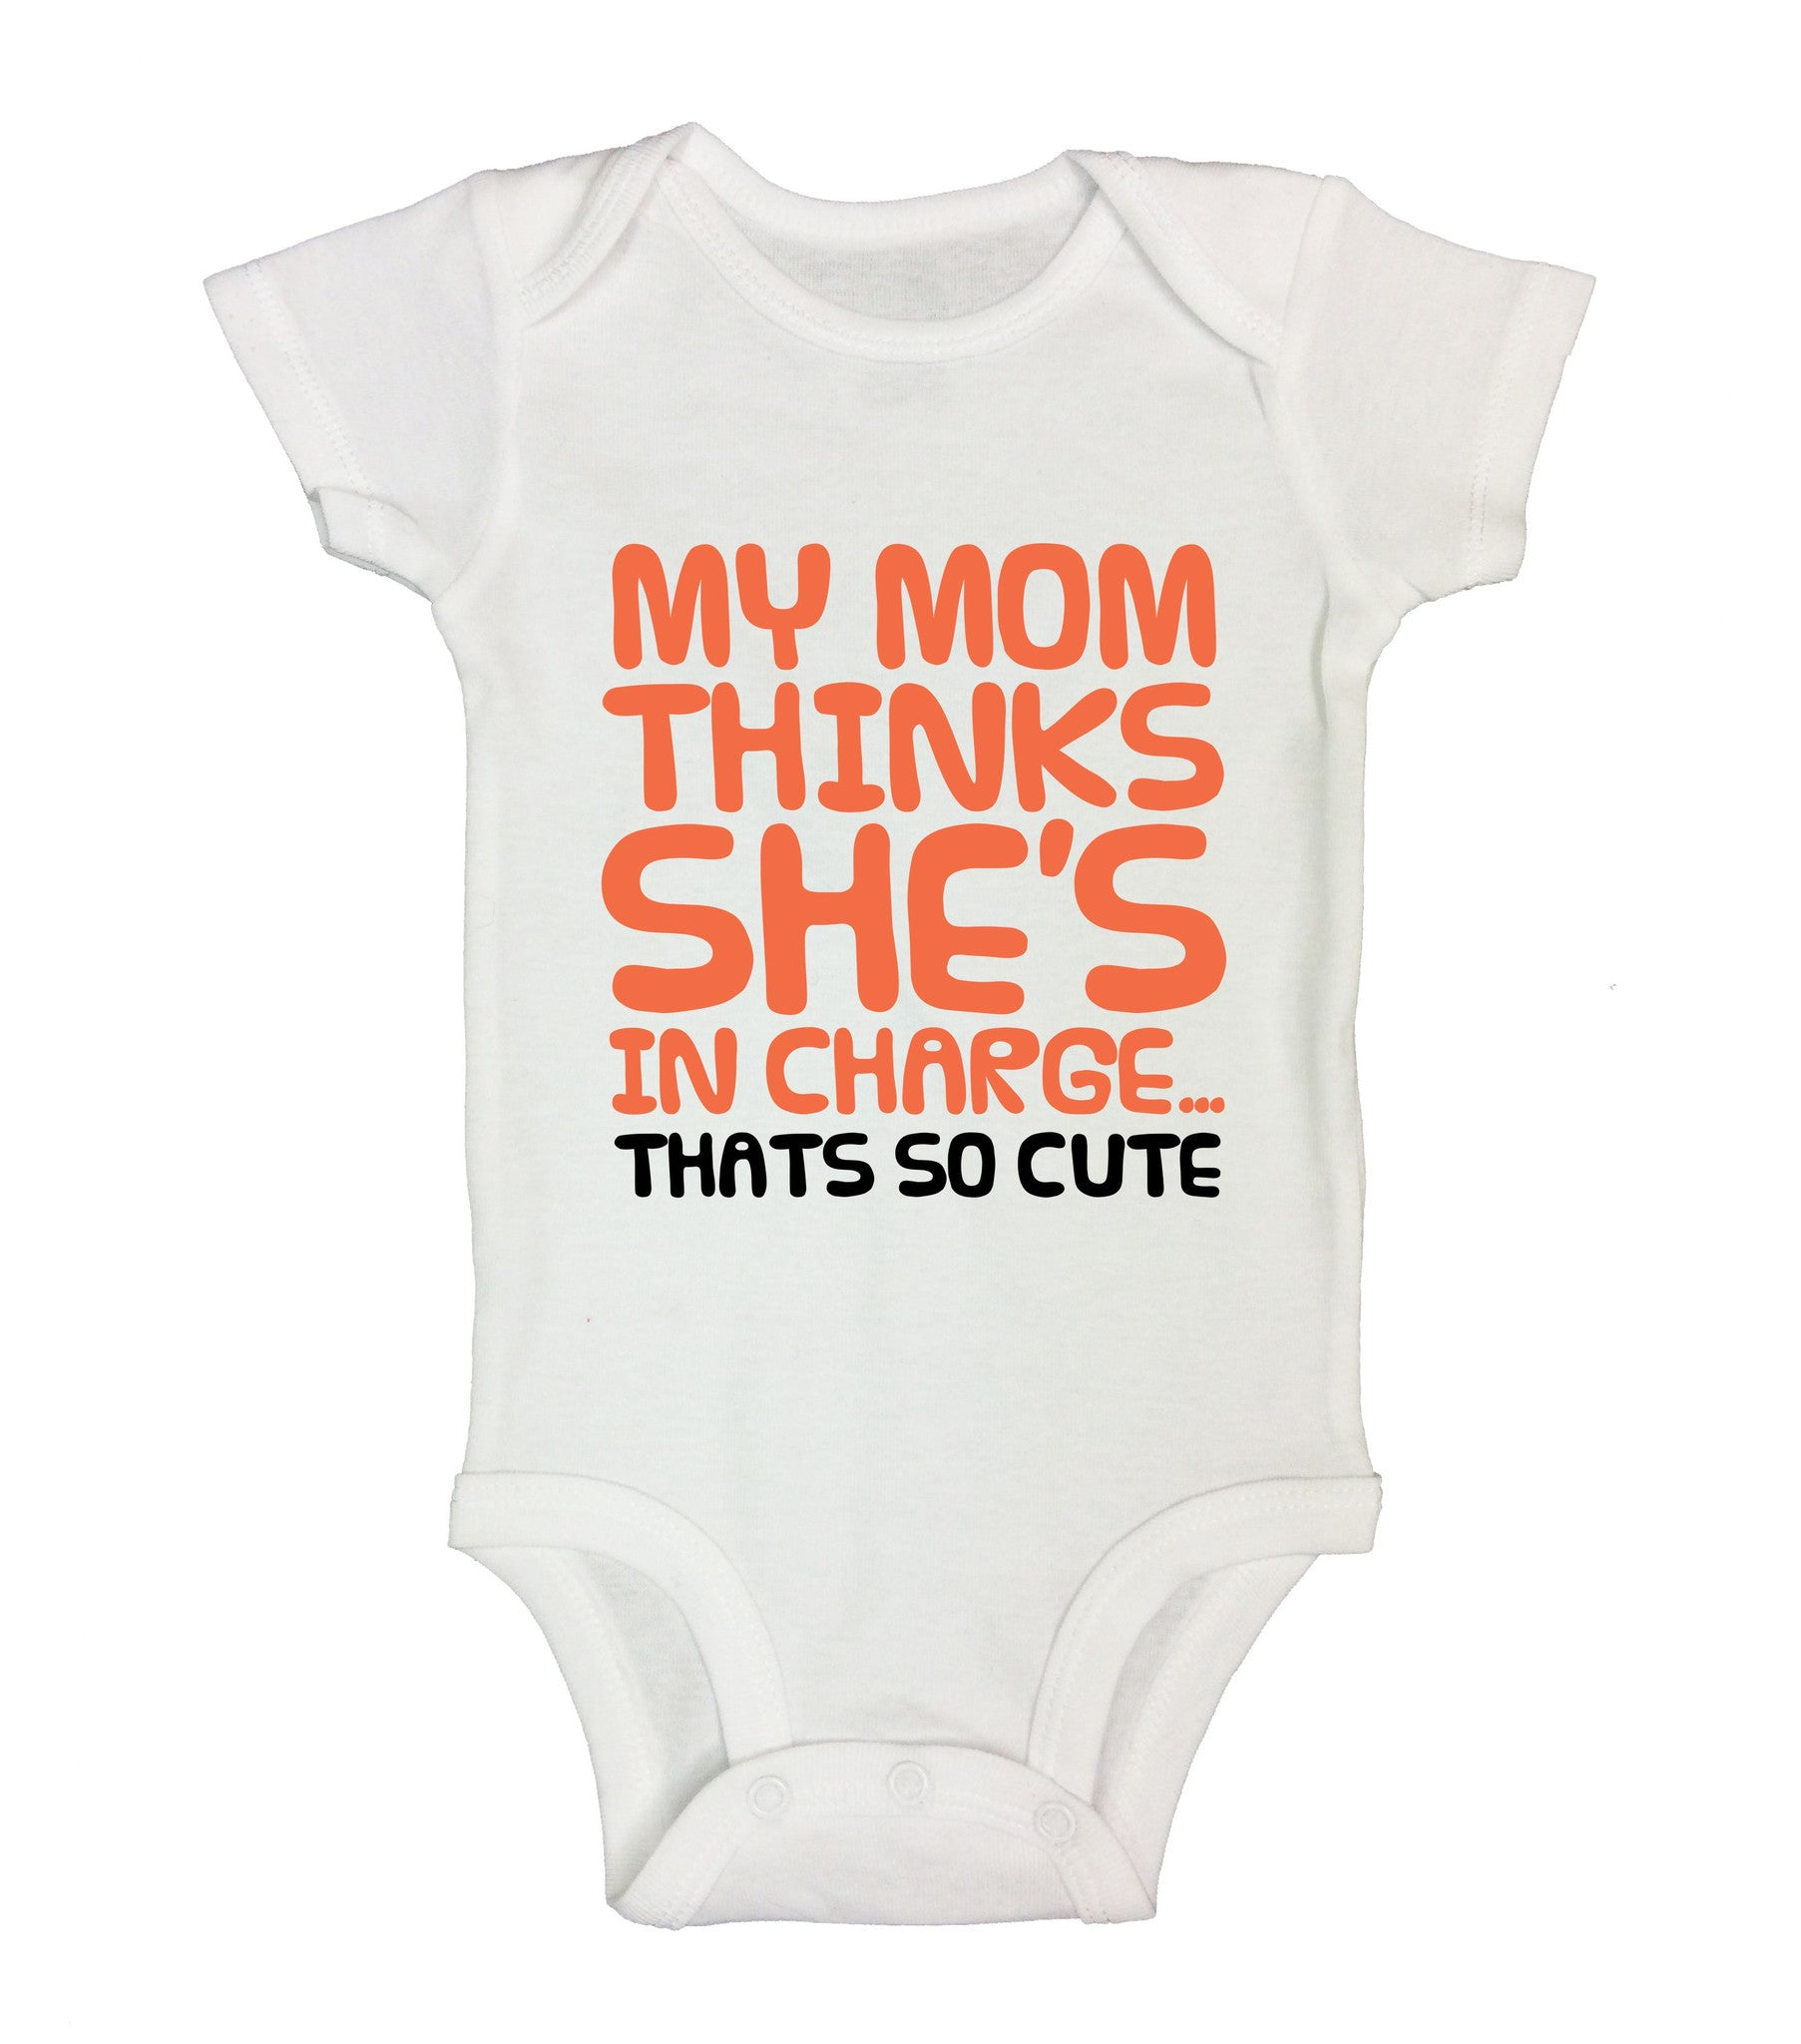 My Mom Thinks She's In Charge... Thats So Cute Funny Kids Onesie - B40 - Funny Shirts Tank Tops Burnouts and Triblends  - 2